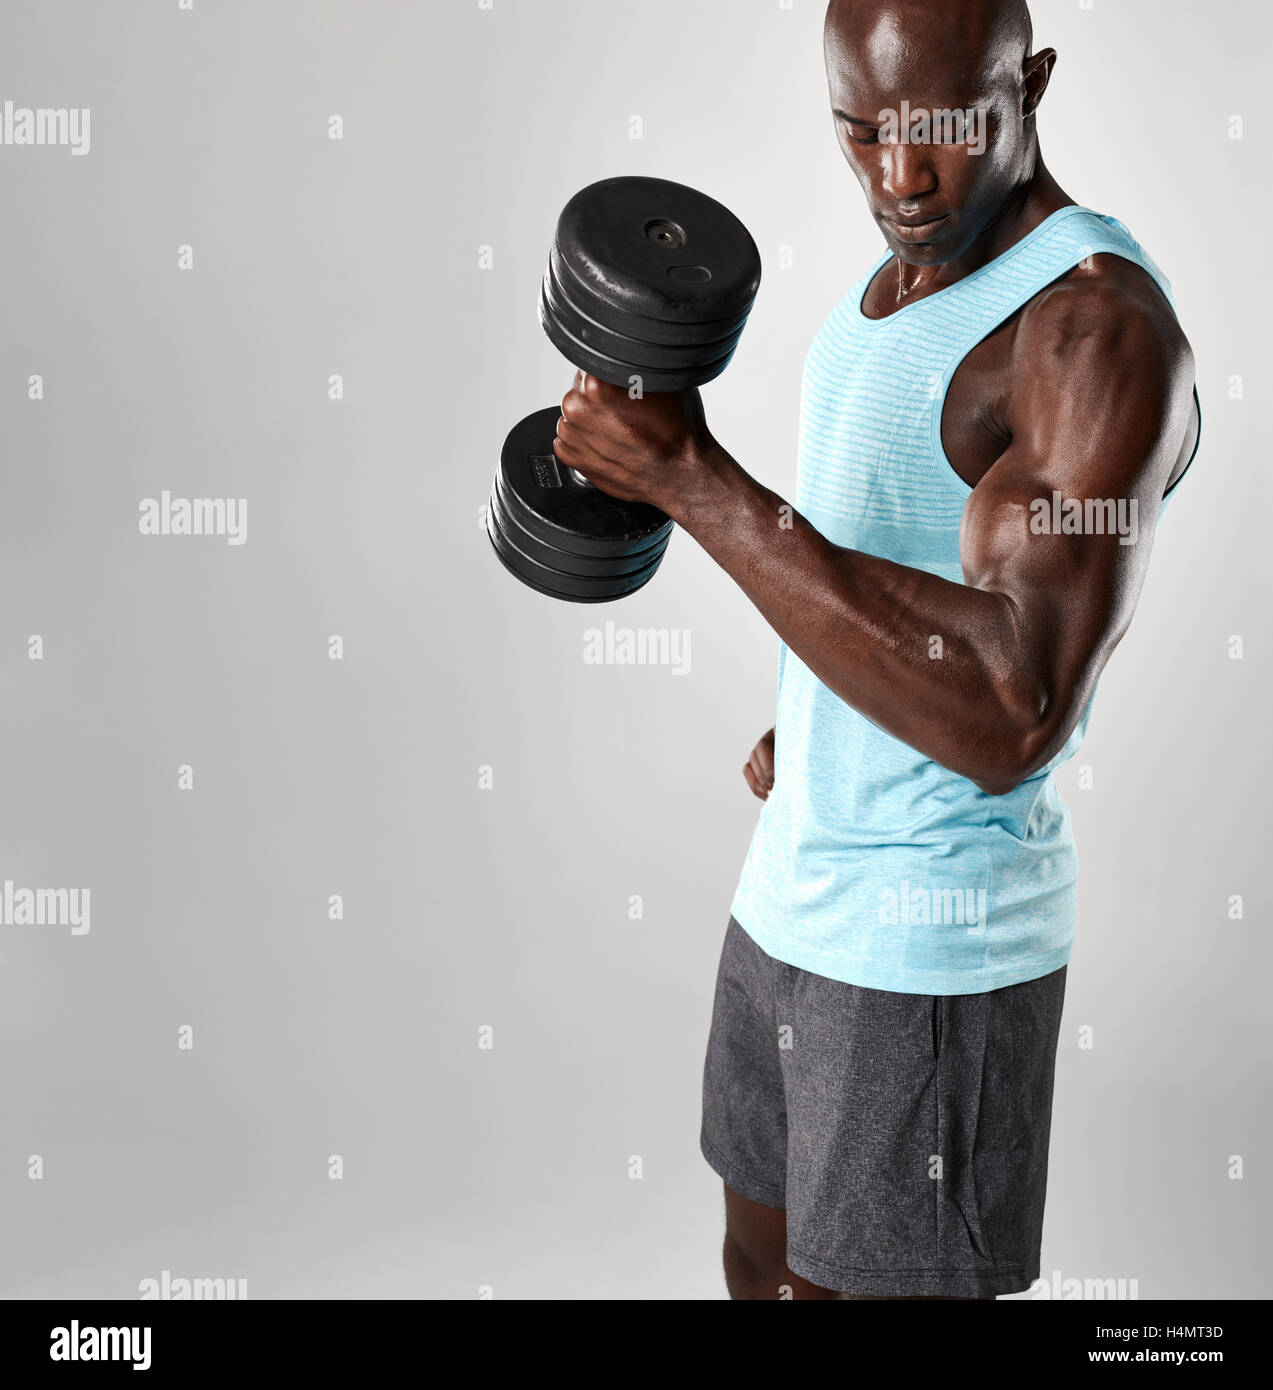 Fit young African man exercising with dumbbells contre fond gris. Modèle homme noir musclé soulever de Photo Stock